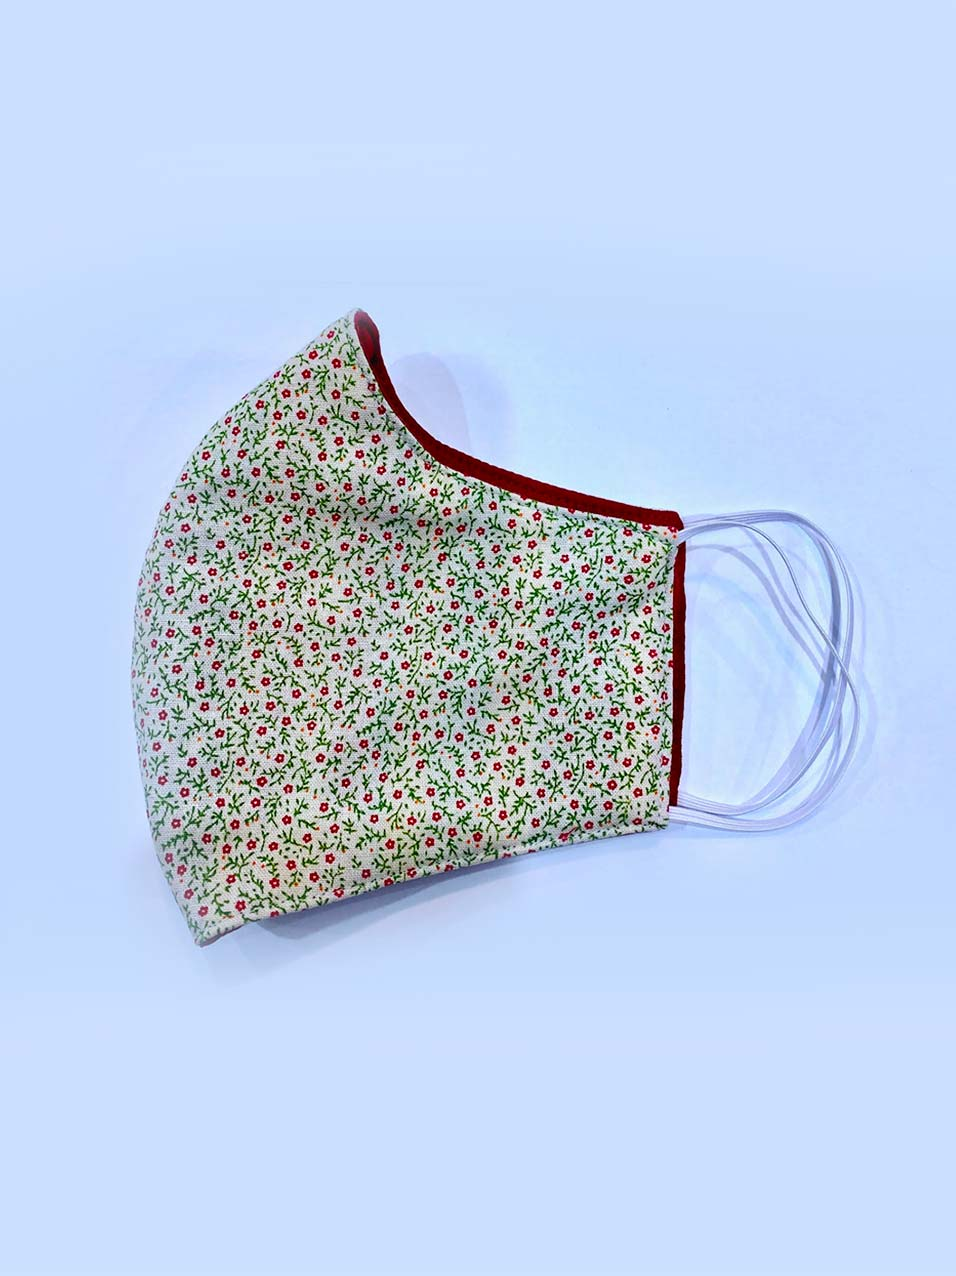 Floral pattern face masks for COVID-19